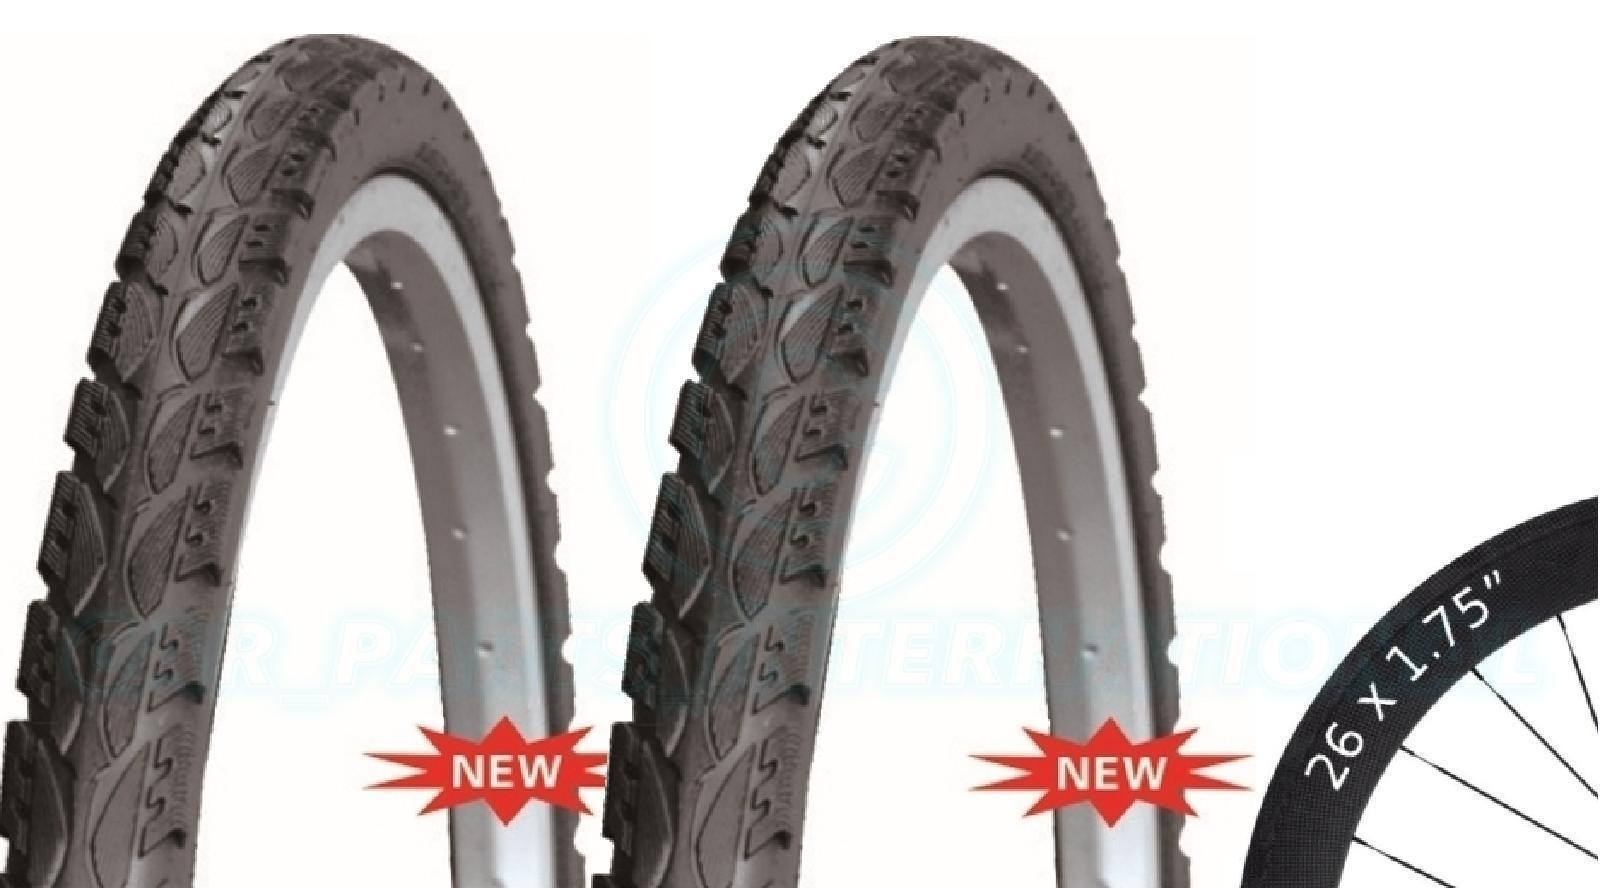 2 Bicycle Tyres Bike Tires - Road / Highway - 26 x 1.75 - High Quality